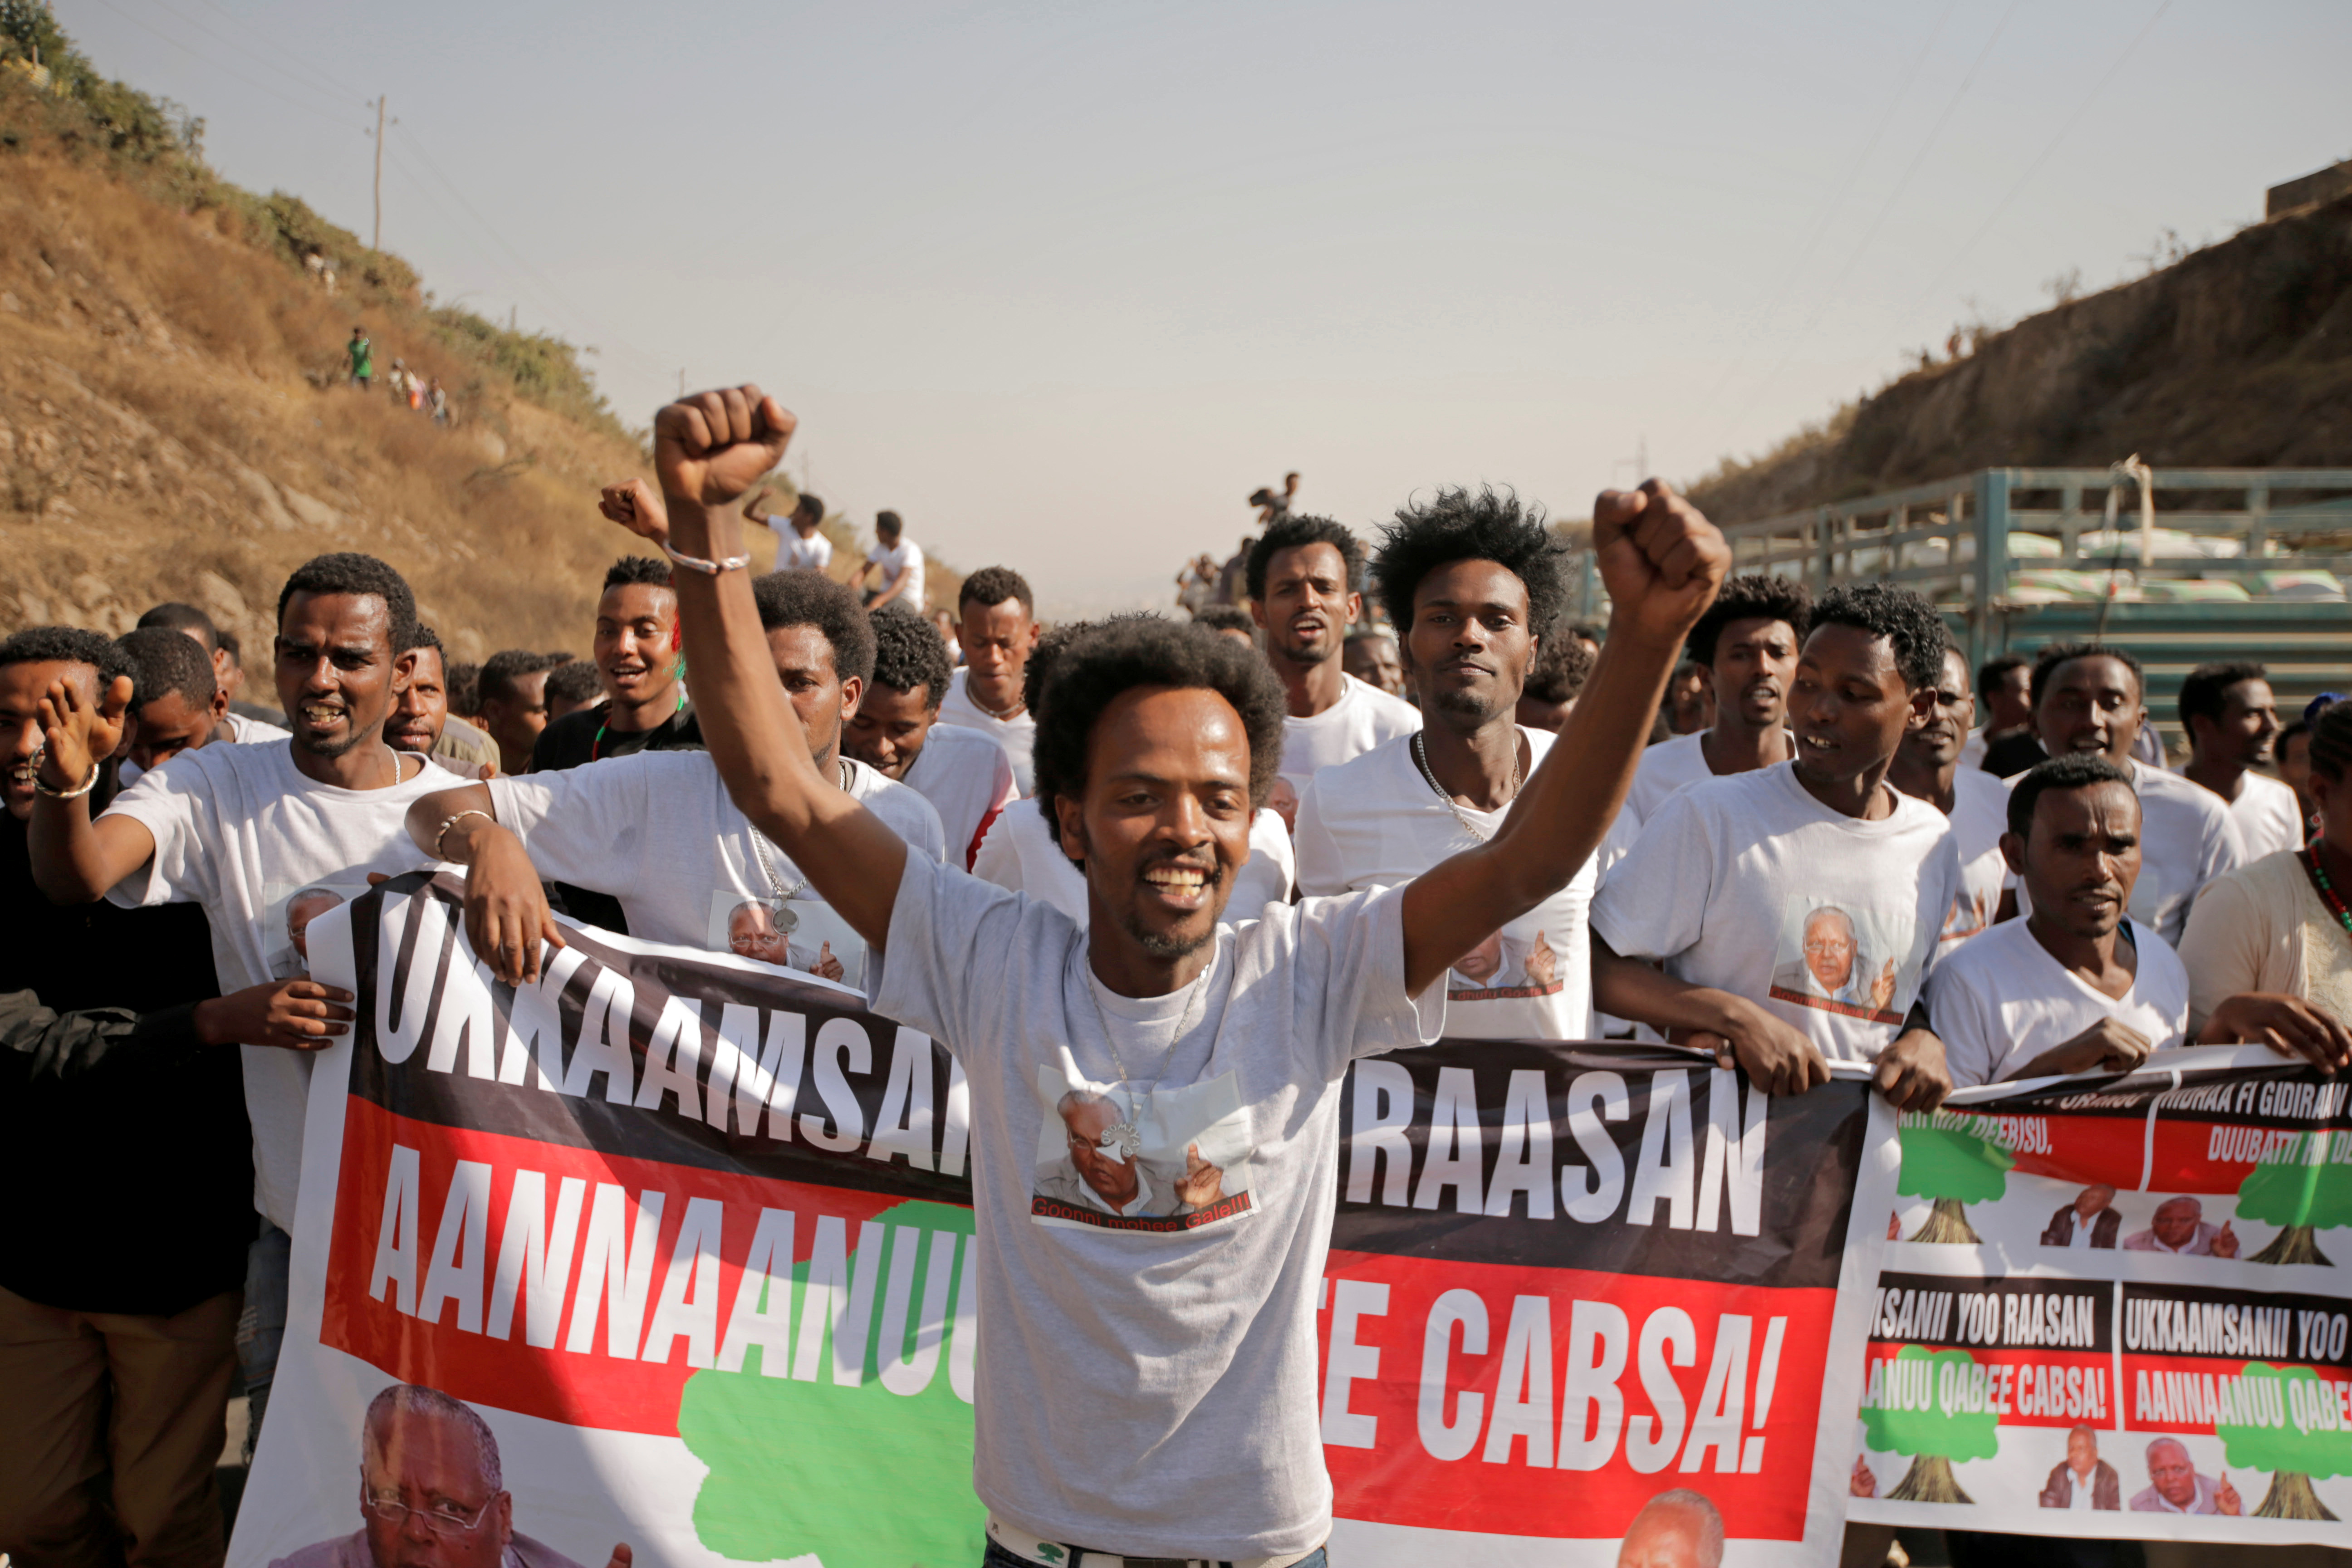 Supporters celebrate as they welcome Merera Gudina, leader of the Oromo Federalist Congress party after his release from prison in Addis Ababa, Ethiopia, Jan. 17, 2018.